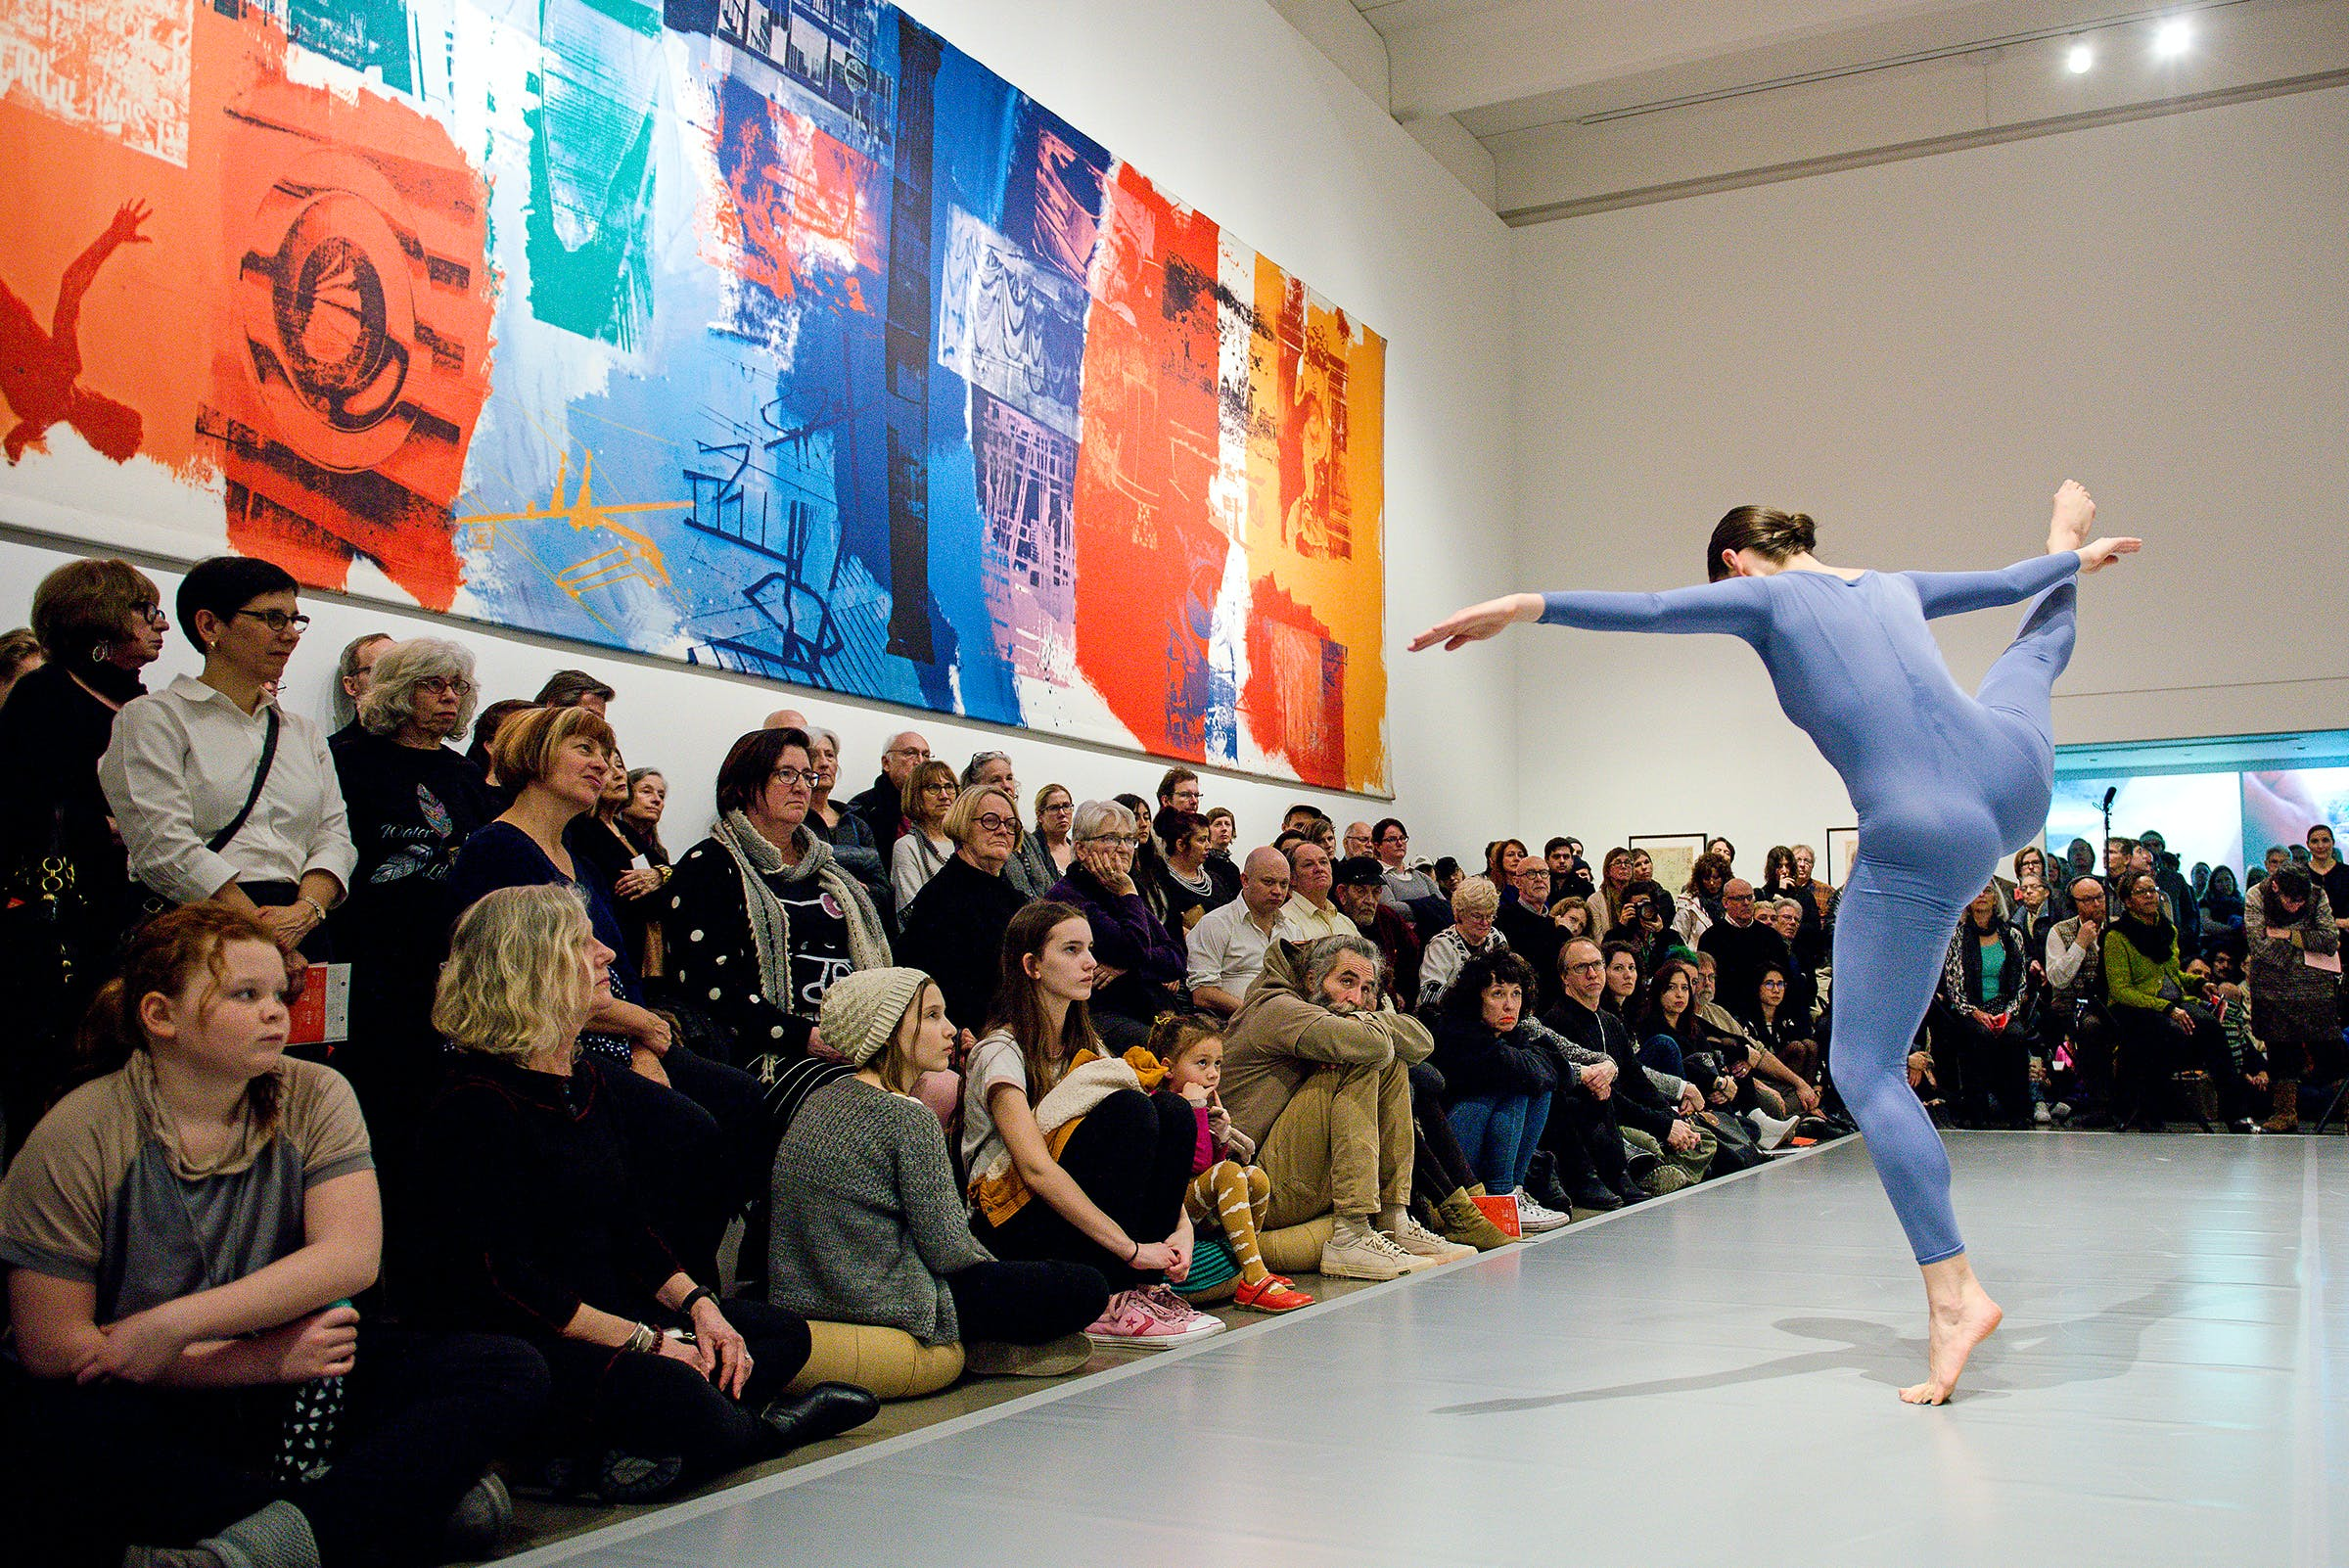 View of the exhibition Merce Cunningham: Common Time, 2017; Merce Cunningham's Events, 2017 (Photo: Anna Fink, ©Walker Art Center)